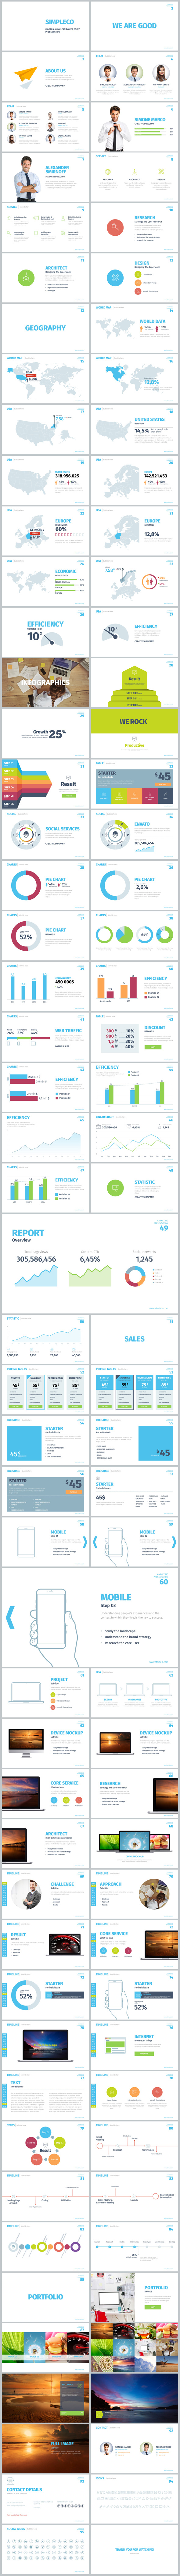 simpleco: minimalistic business powerpoint template | simple, Presentation templates